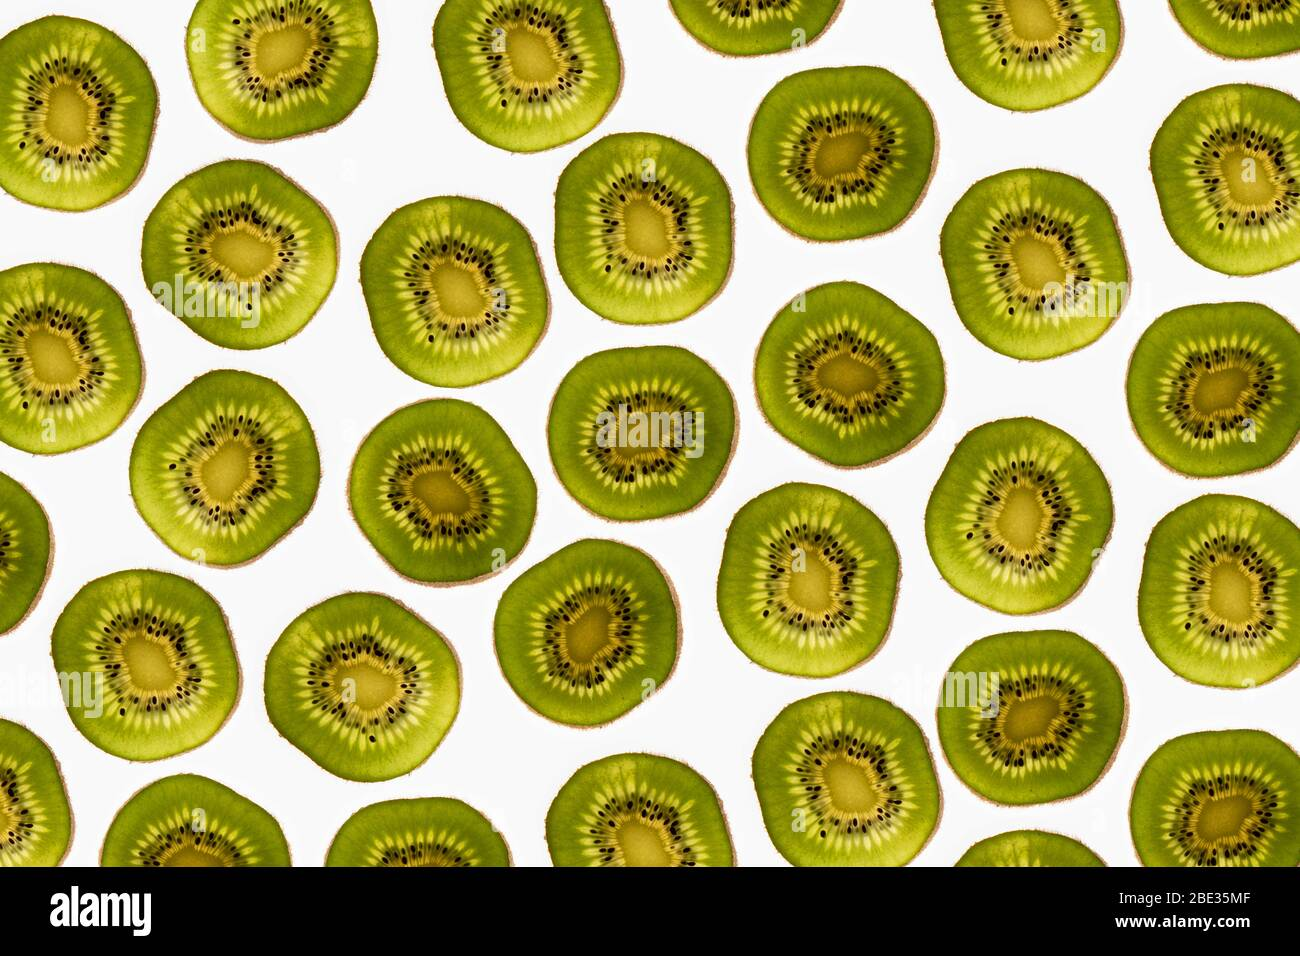 a beautiful image of an interesting pattern of kiwi fruit slices against a bright white background, flatlay Stock Photo